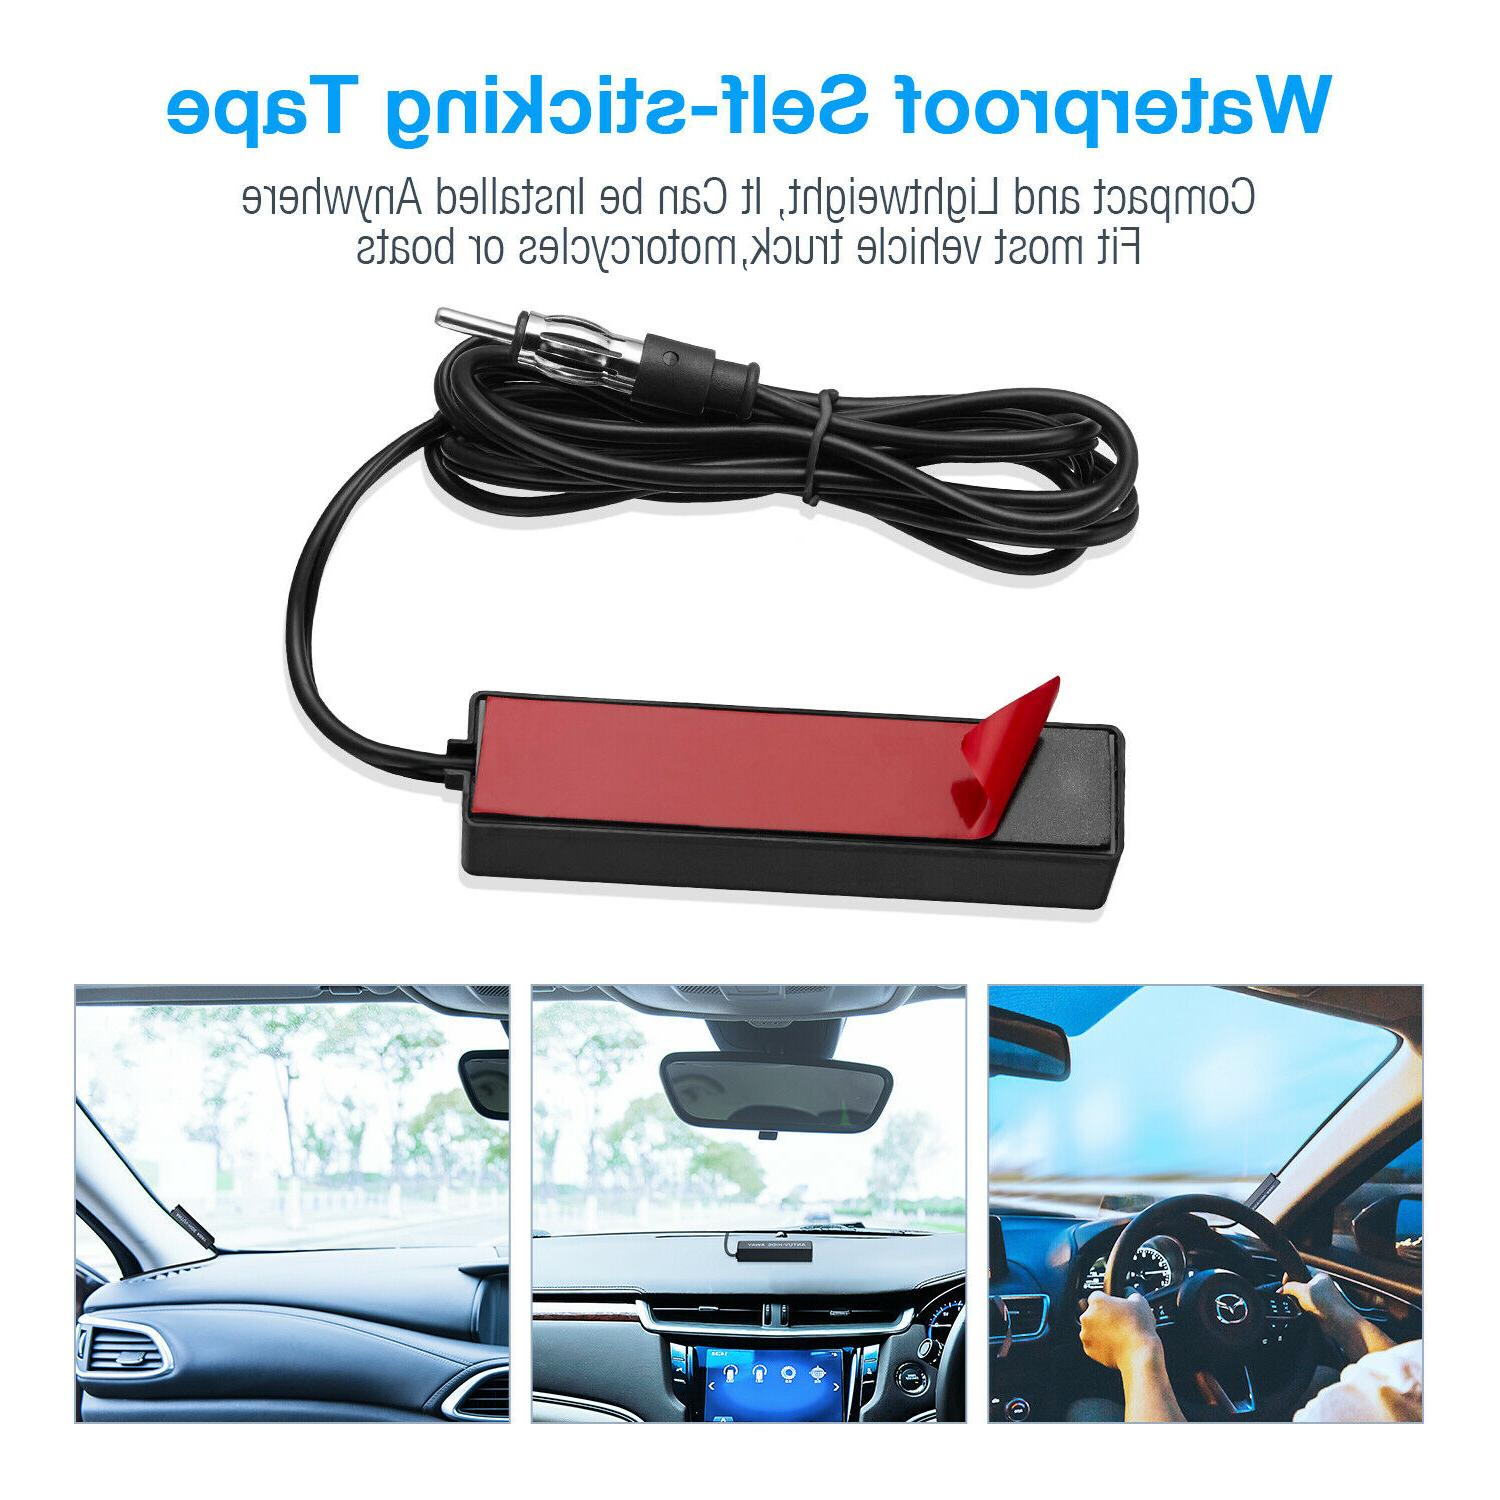 Car Radio Stereo For Vehicle Motorcycle Boat